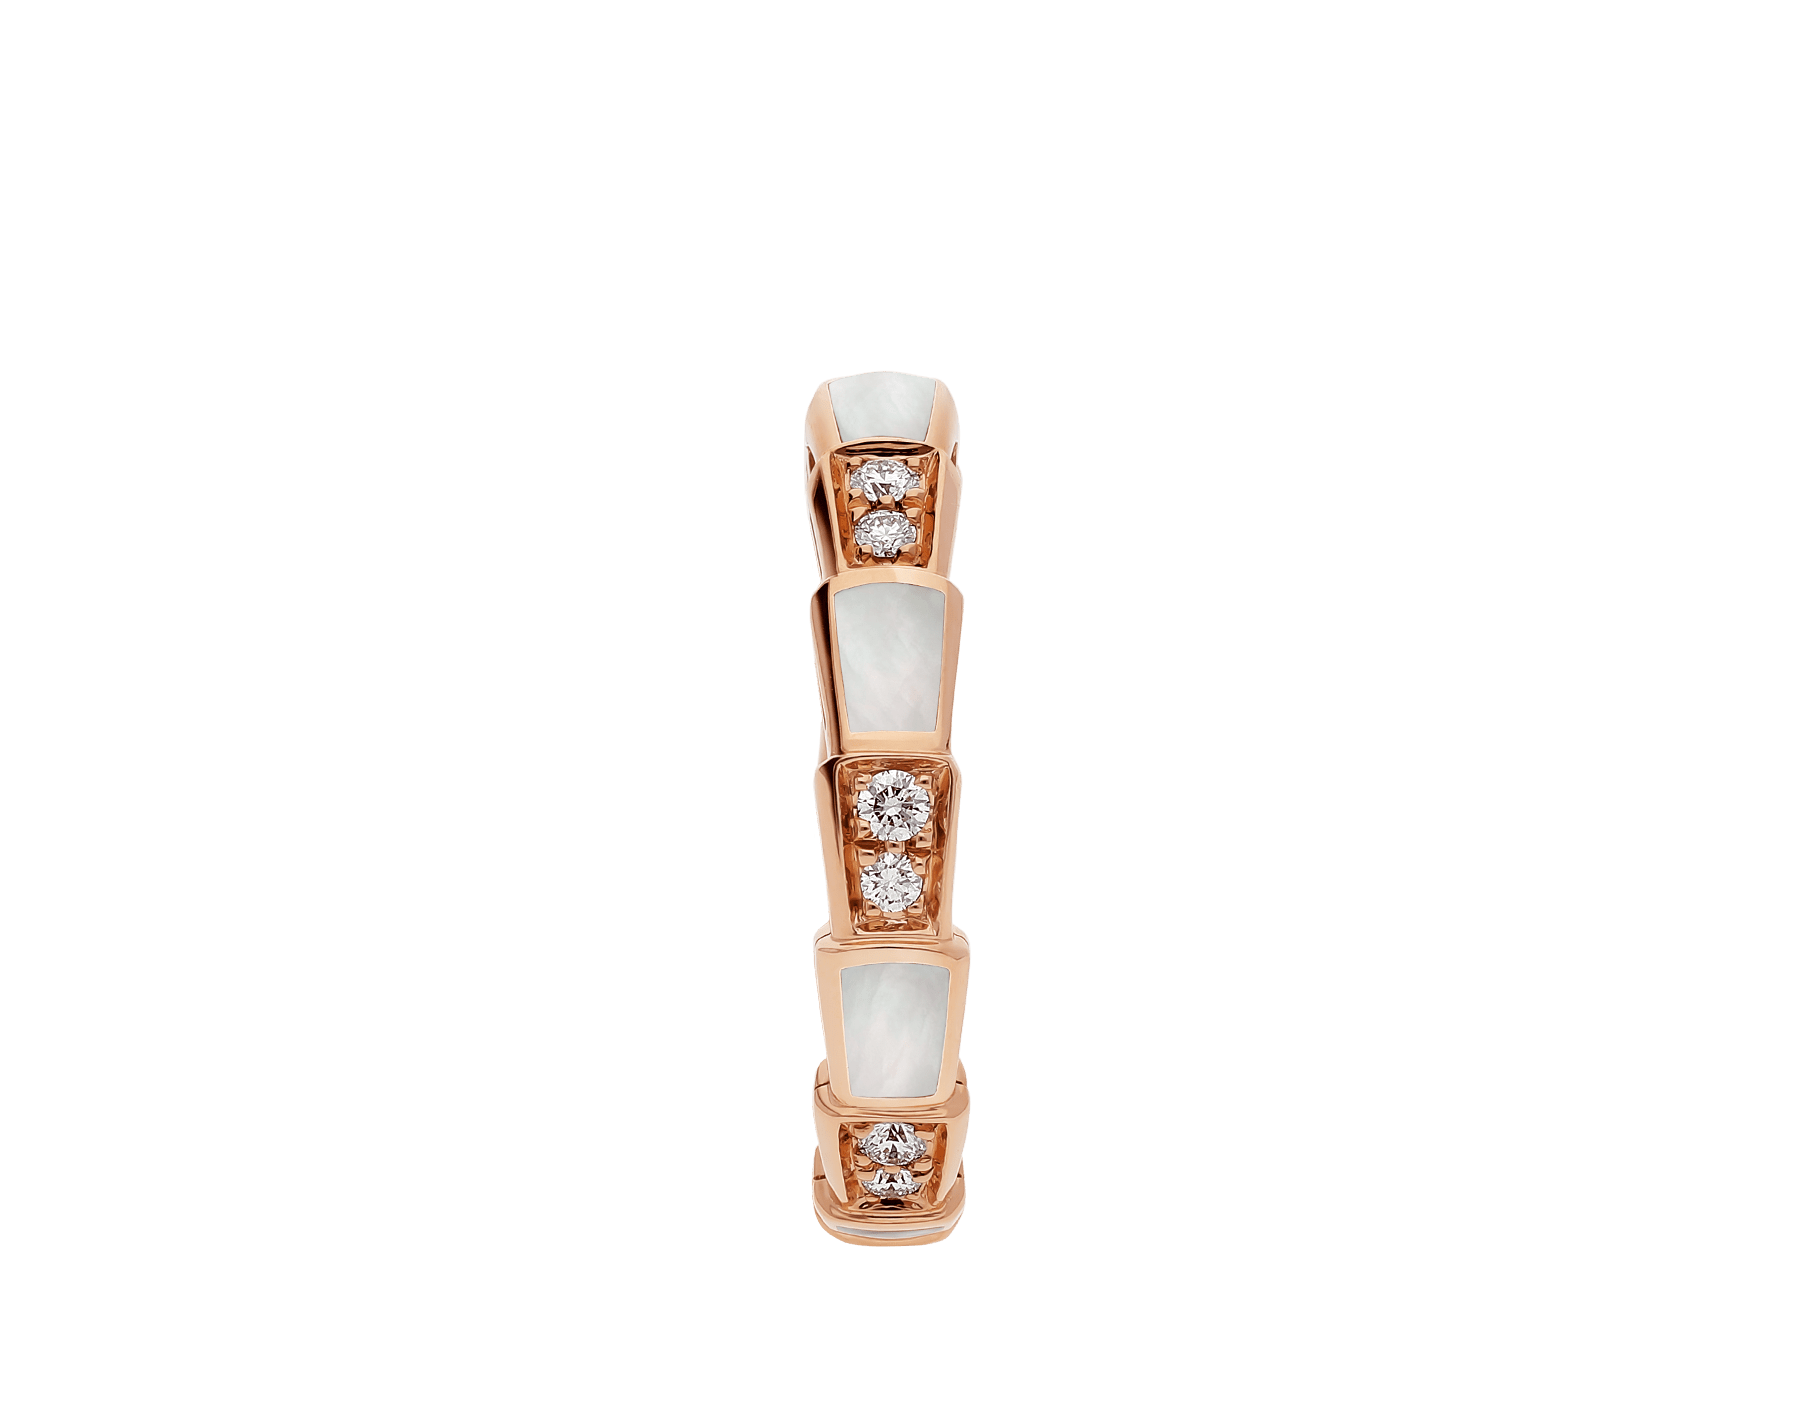 Serpenti Viper band ring in 18 kt rose gold set with mother-of-pearl elements and pavé diamonds (0.25 ct). AN858042 image 2